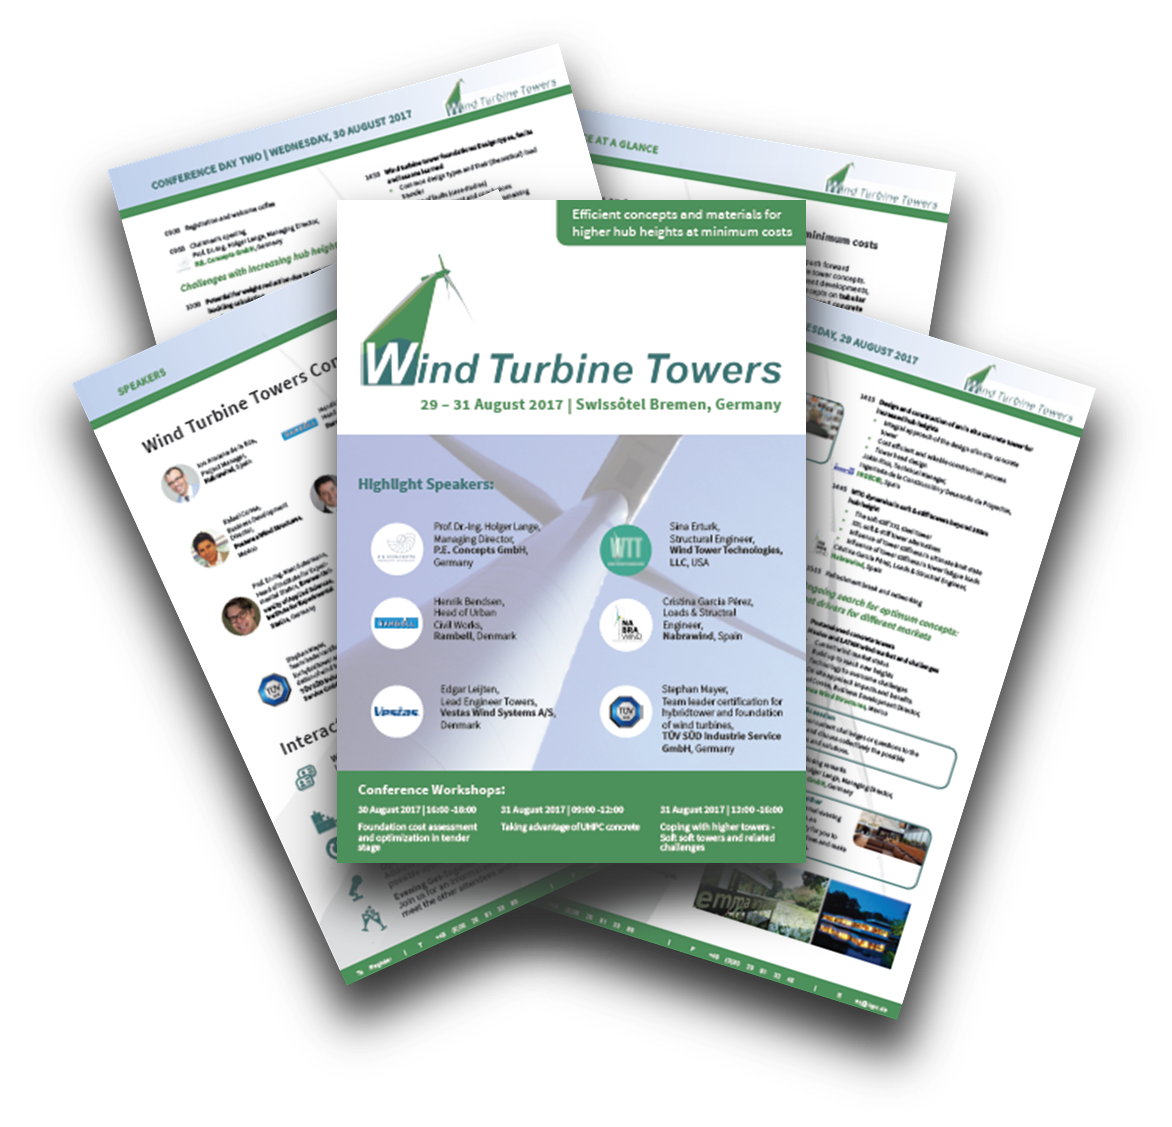 Towers for Wind Turbines Agenda